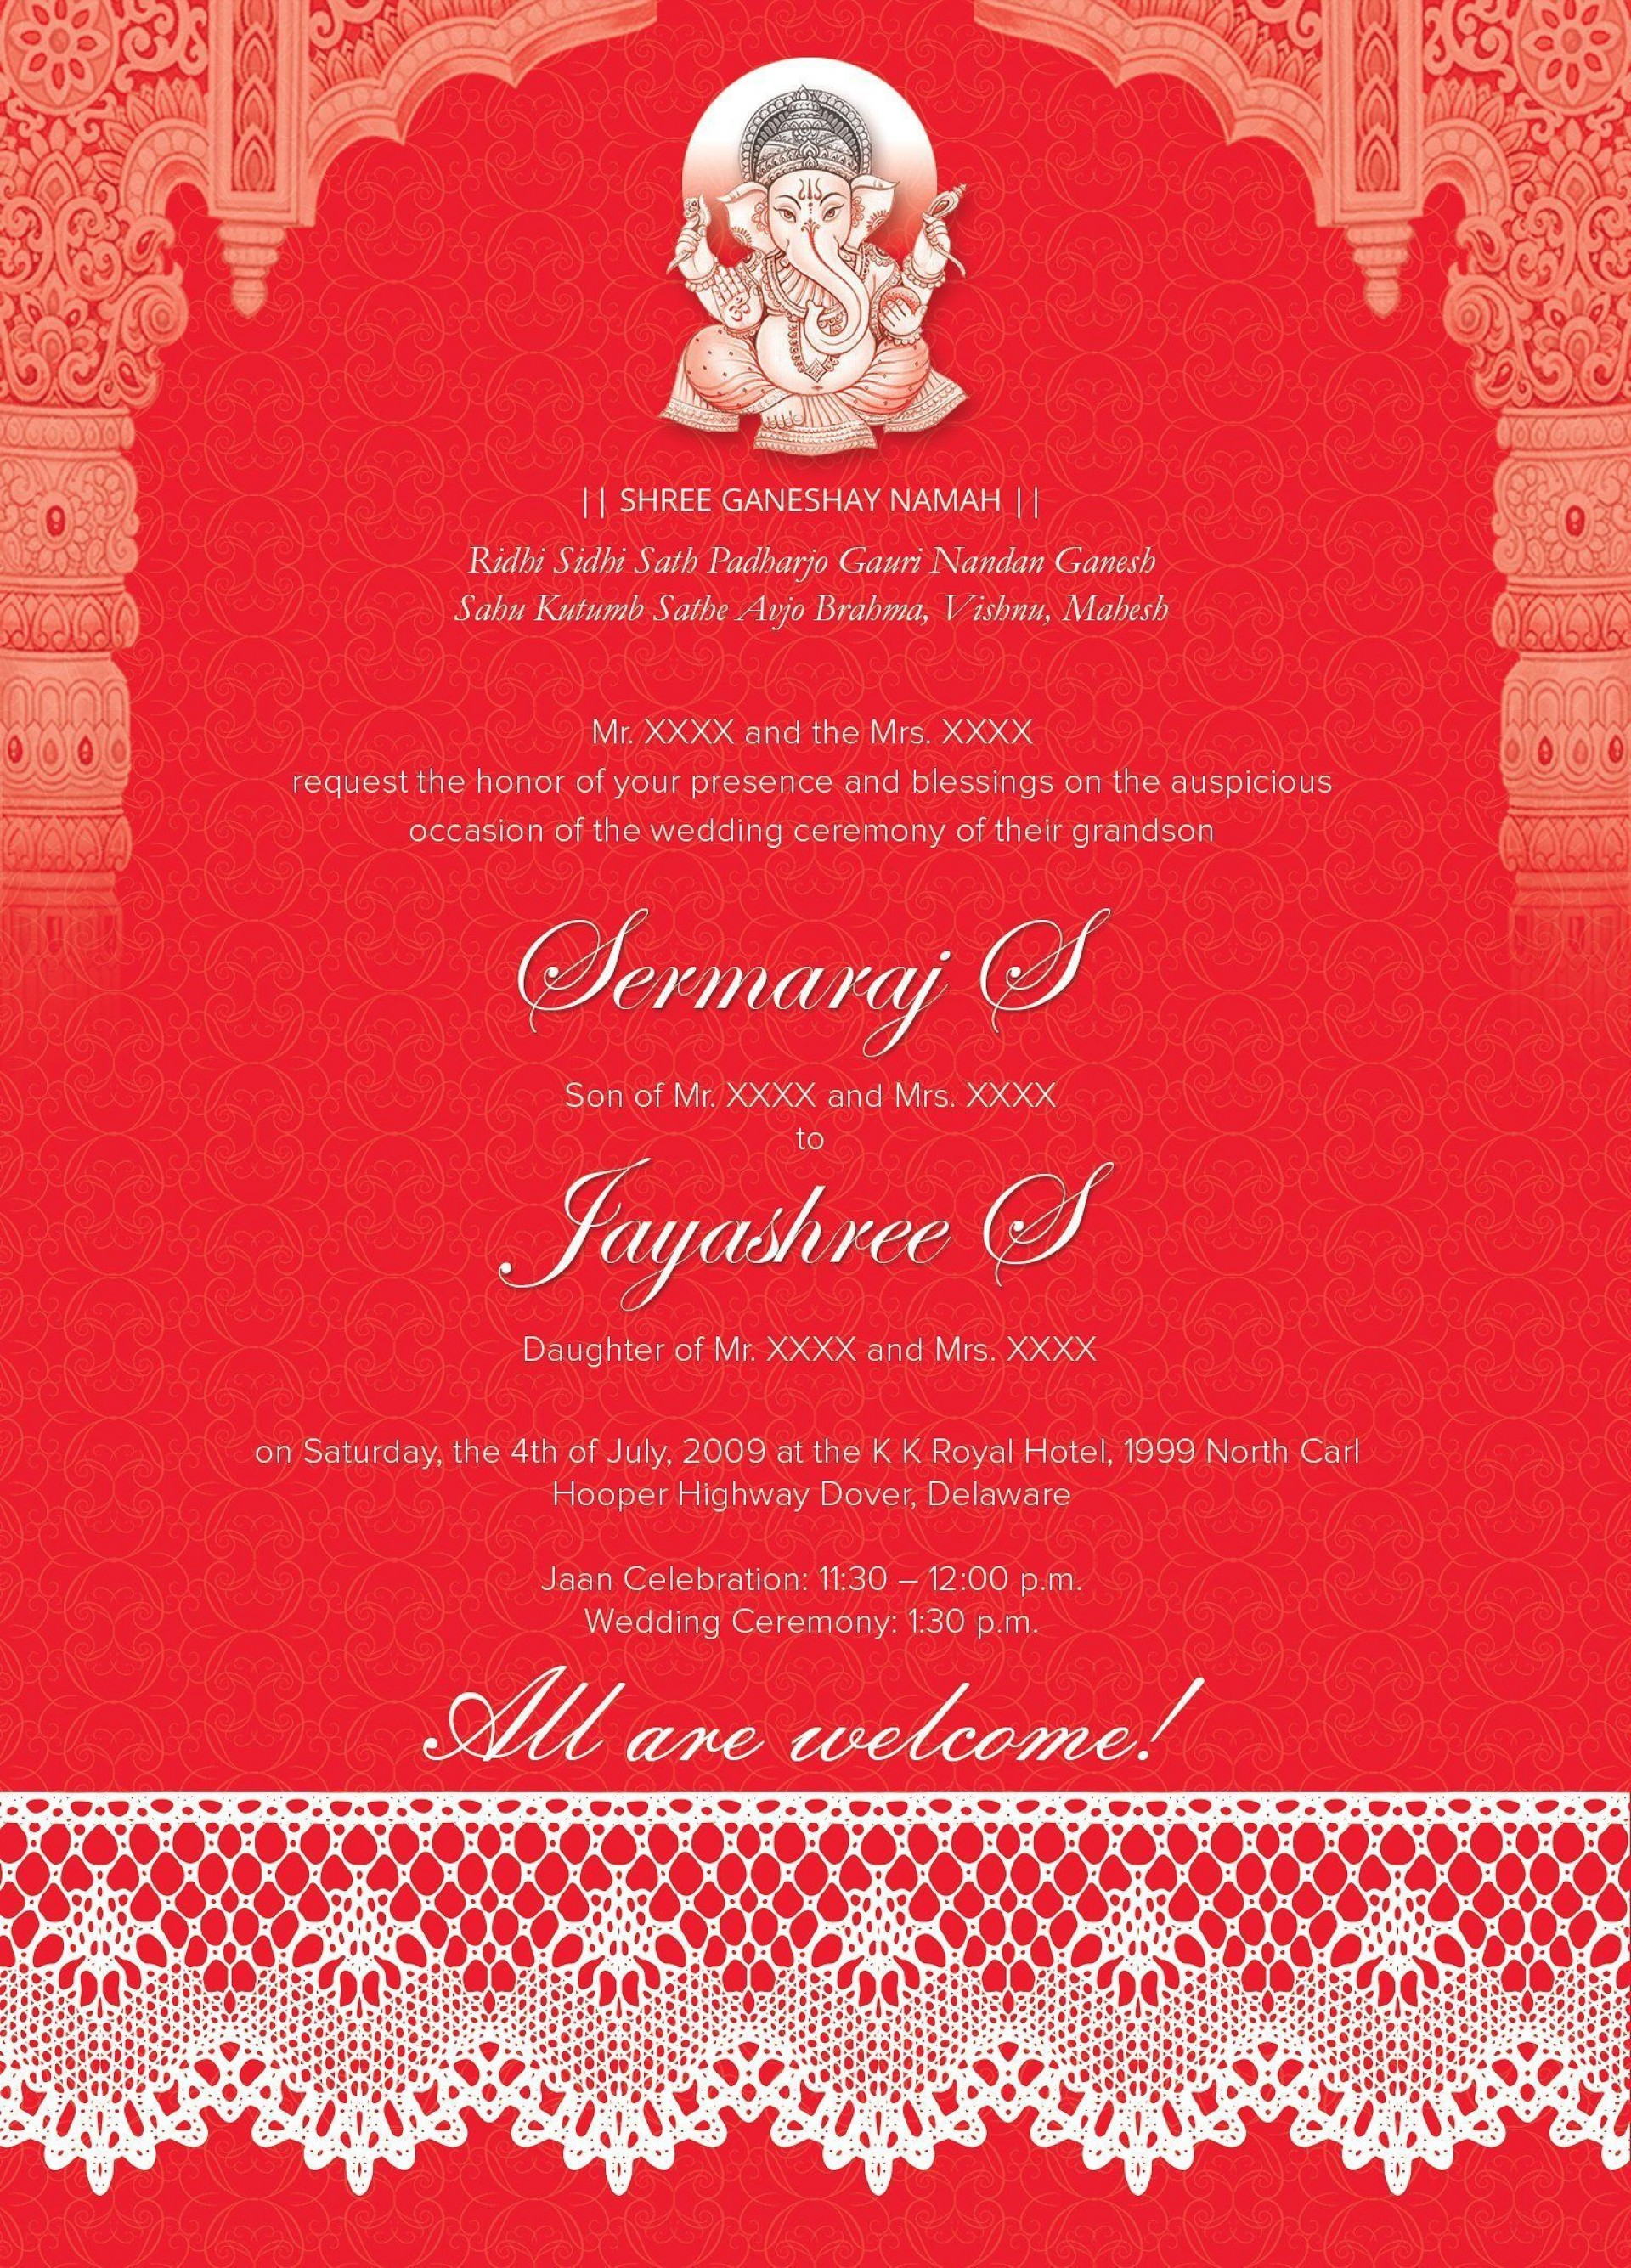 005 Marvelou Free Online Indian Wedding Invitation Card Template Image  Templates1920